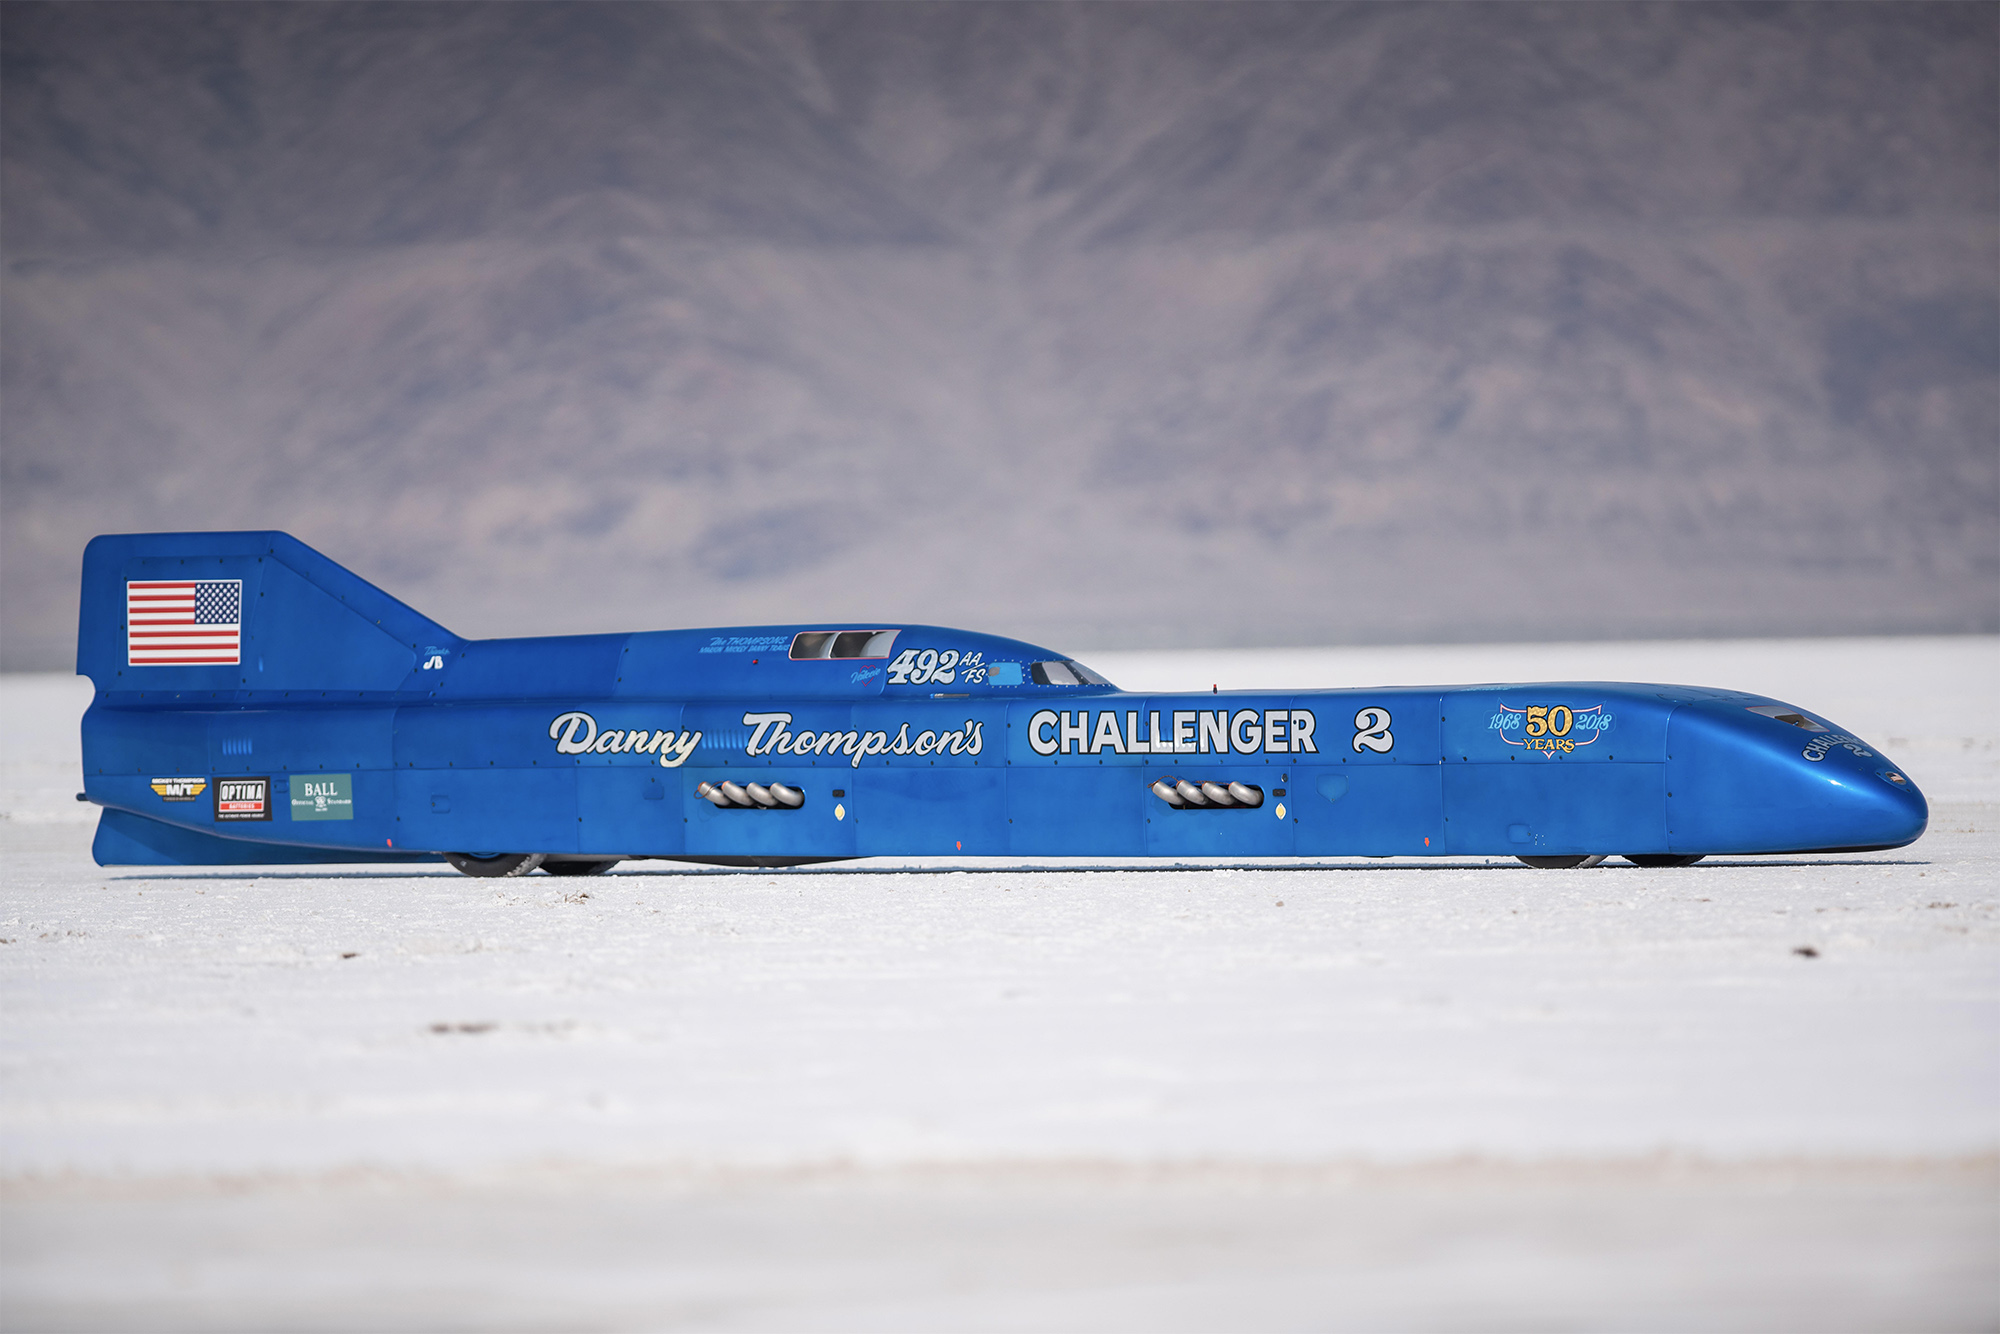 Challenger 2 land speed record car